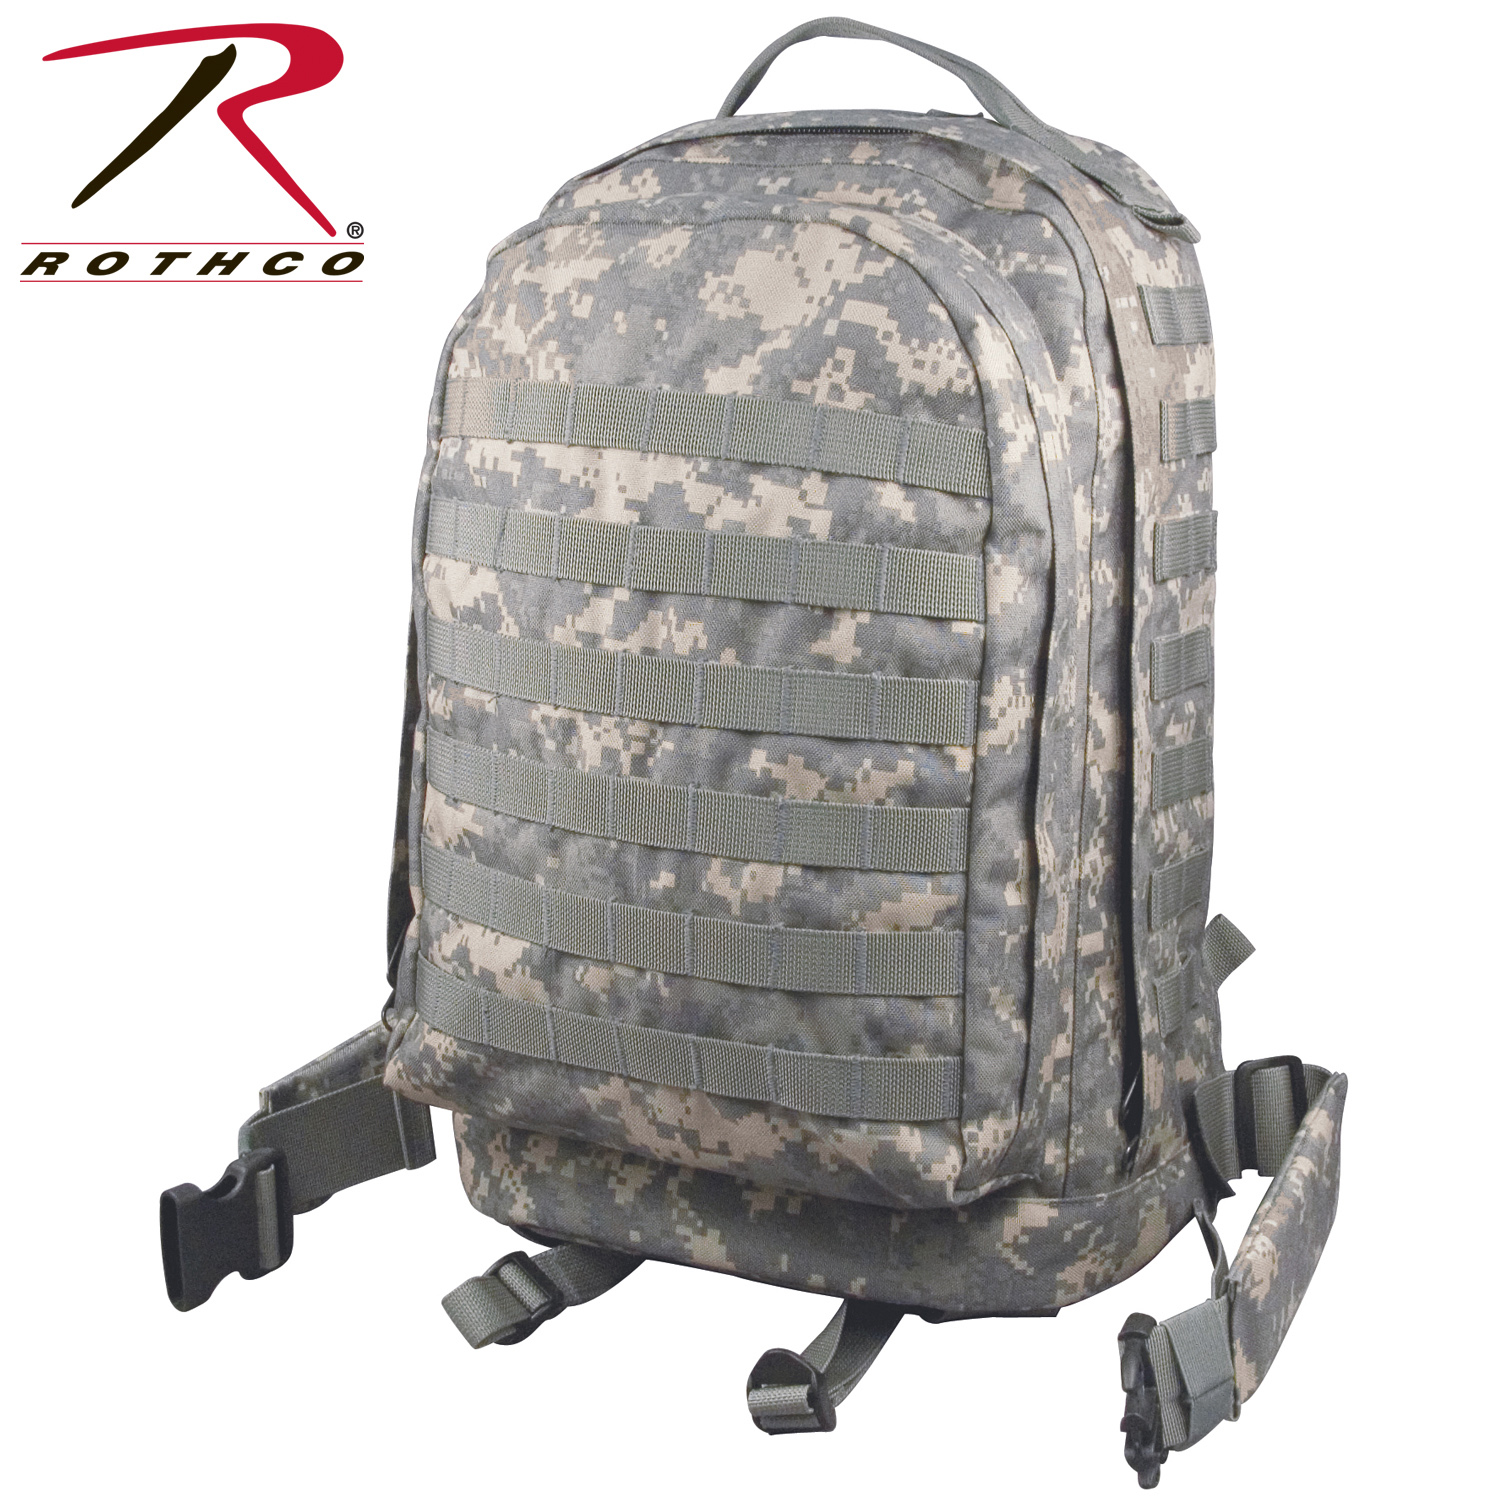 Out of all the backpacks listed, the Rothco is probably the most similar to the in-game Level 3 Backpack.